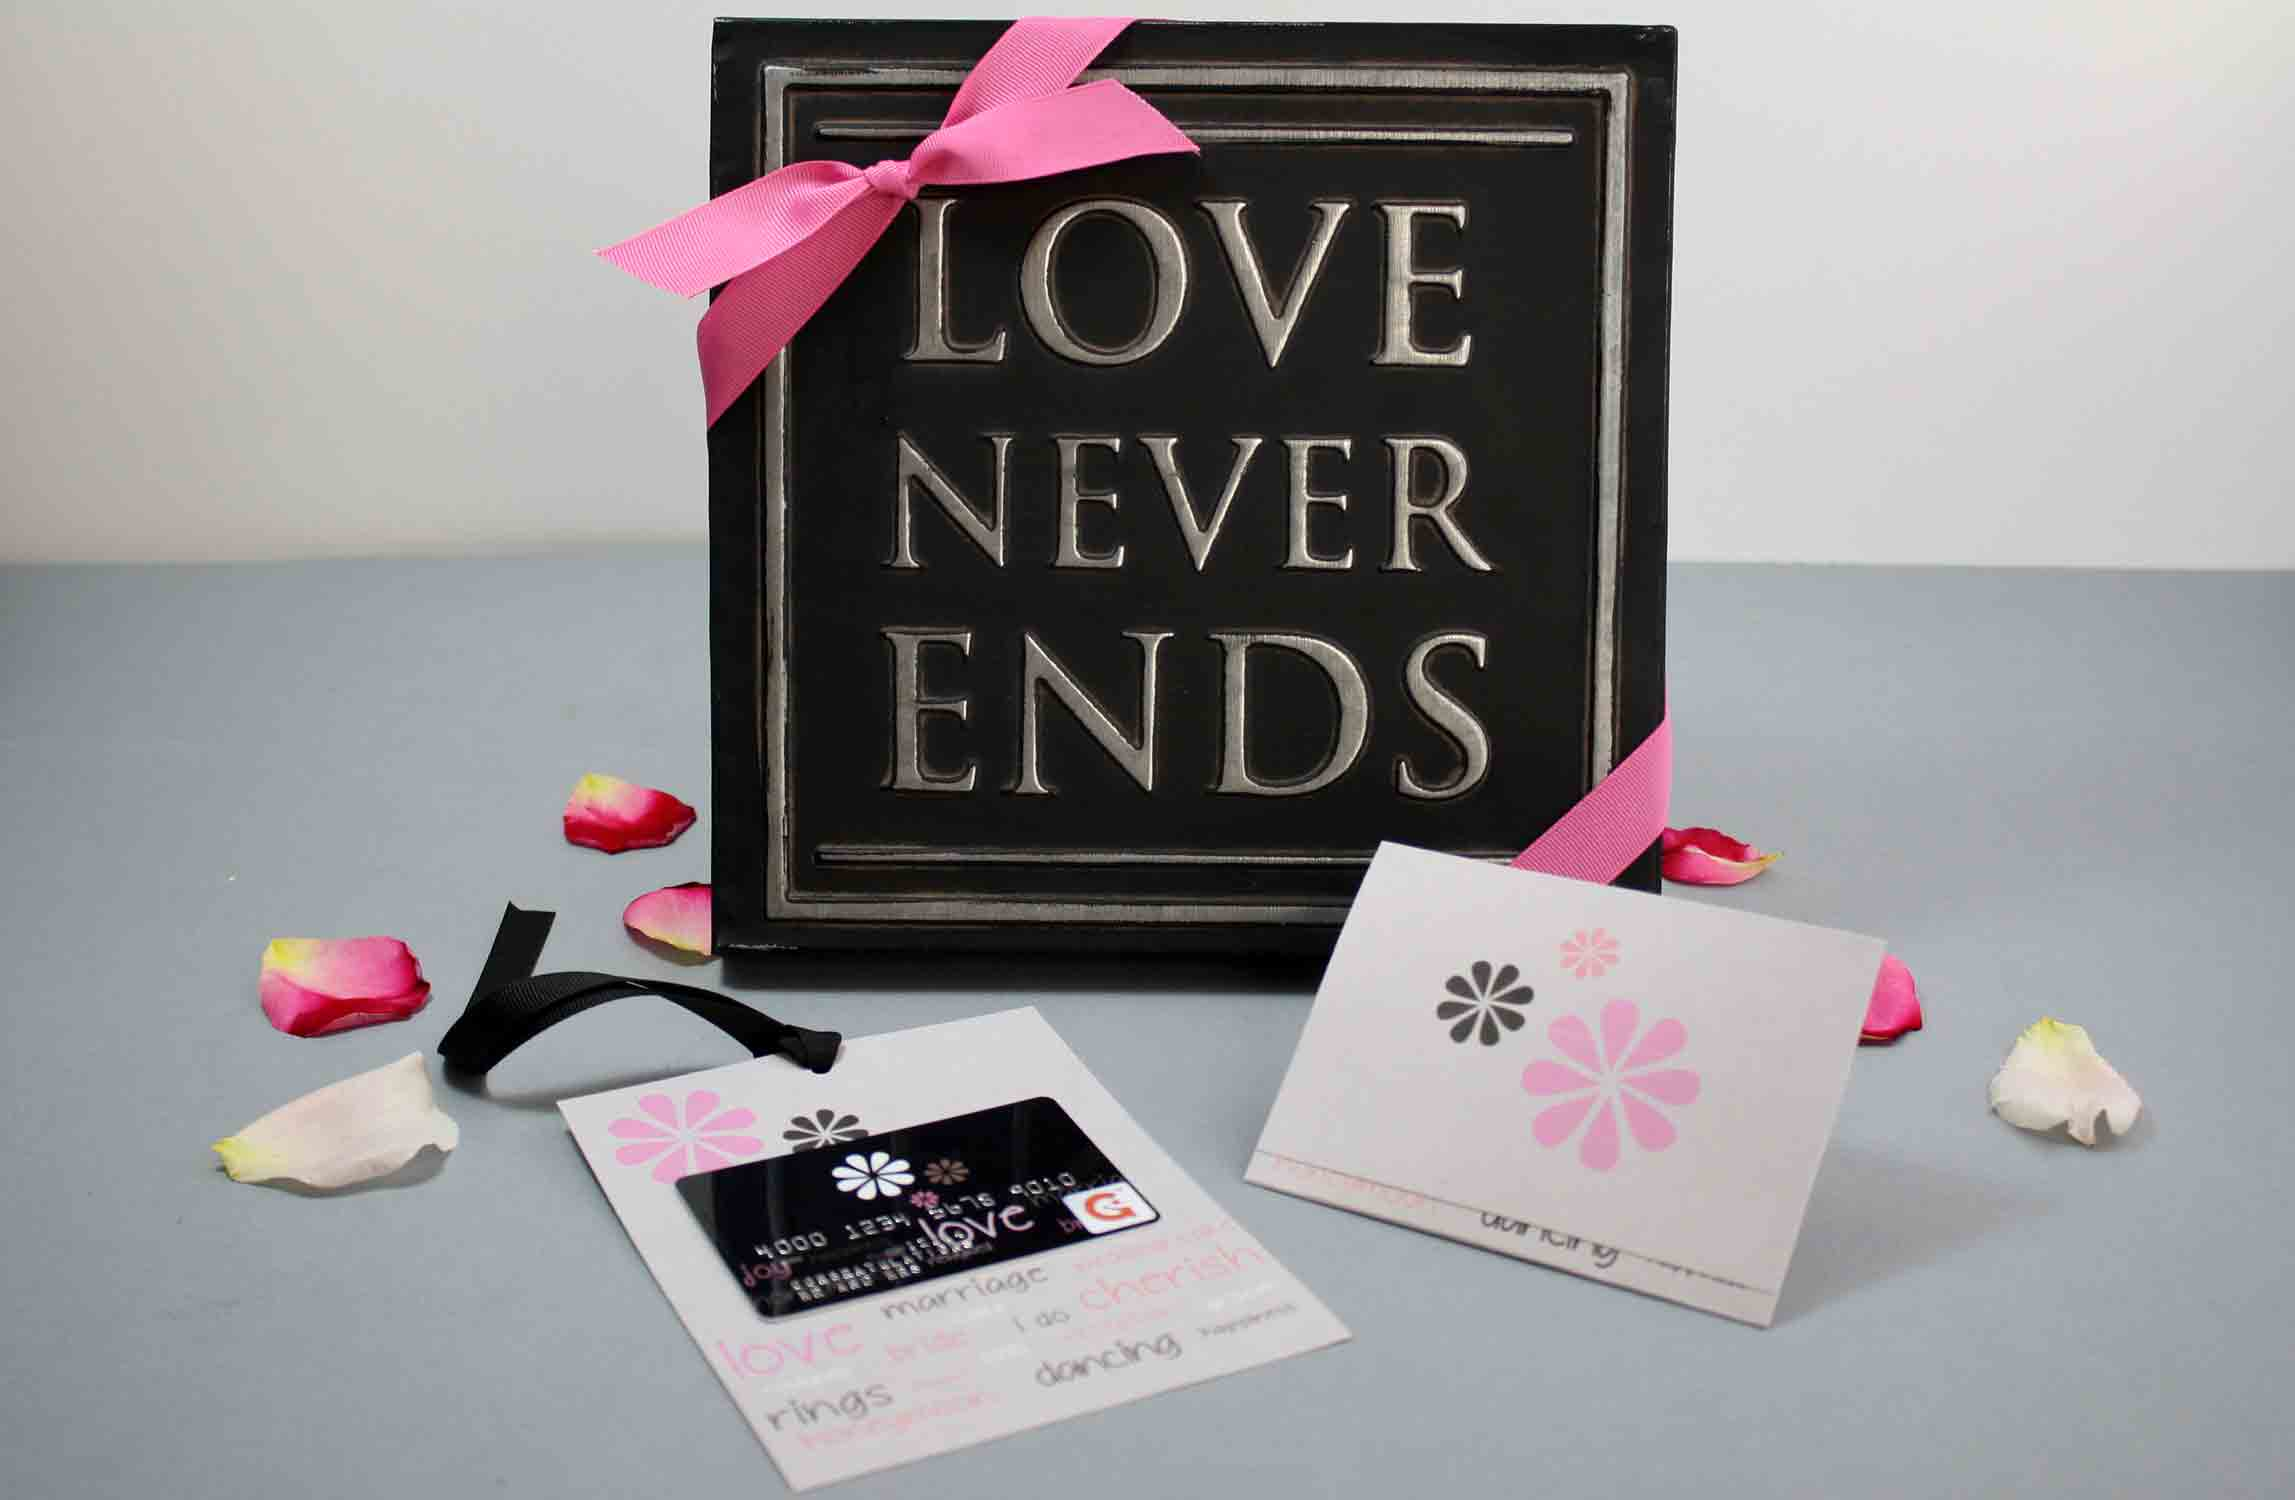 love never ends quote with gift card